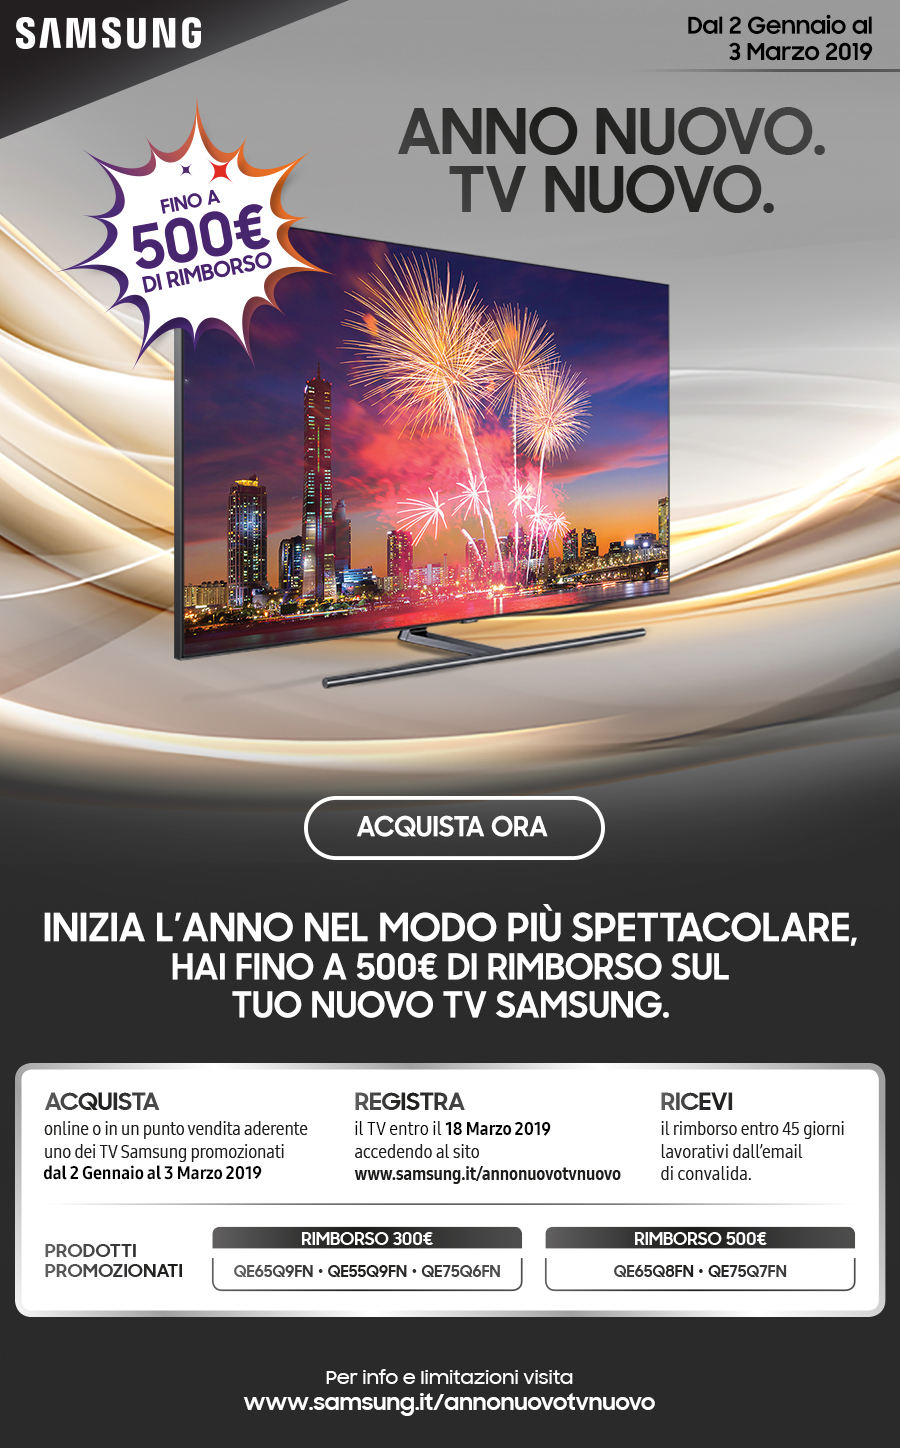 promo samsung anno nuovo tv nuovo comet. Black Bedroom Furniture Sets. Home Design Ideas